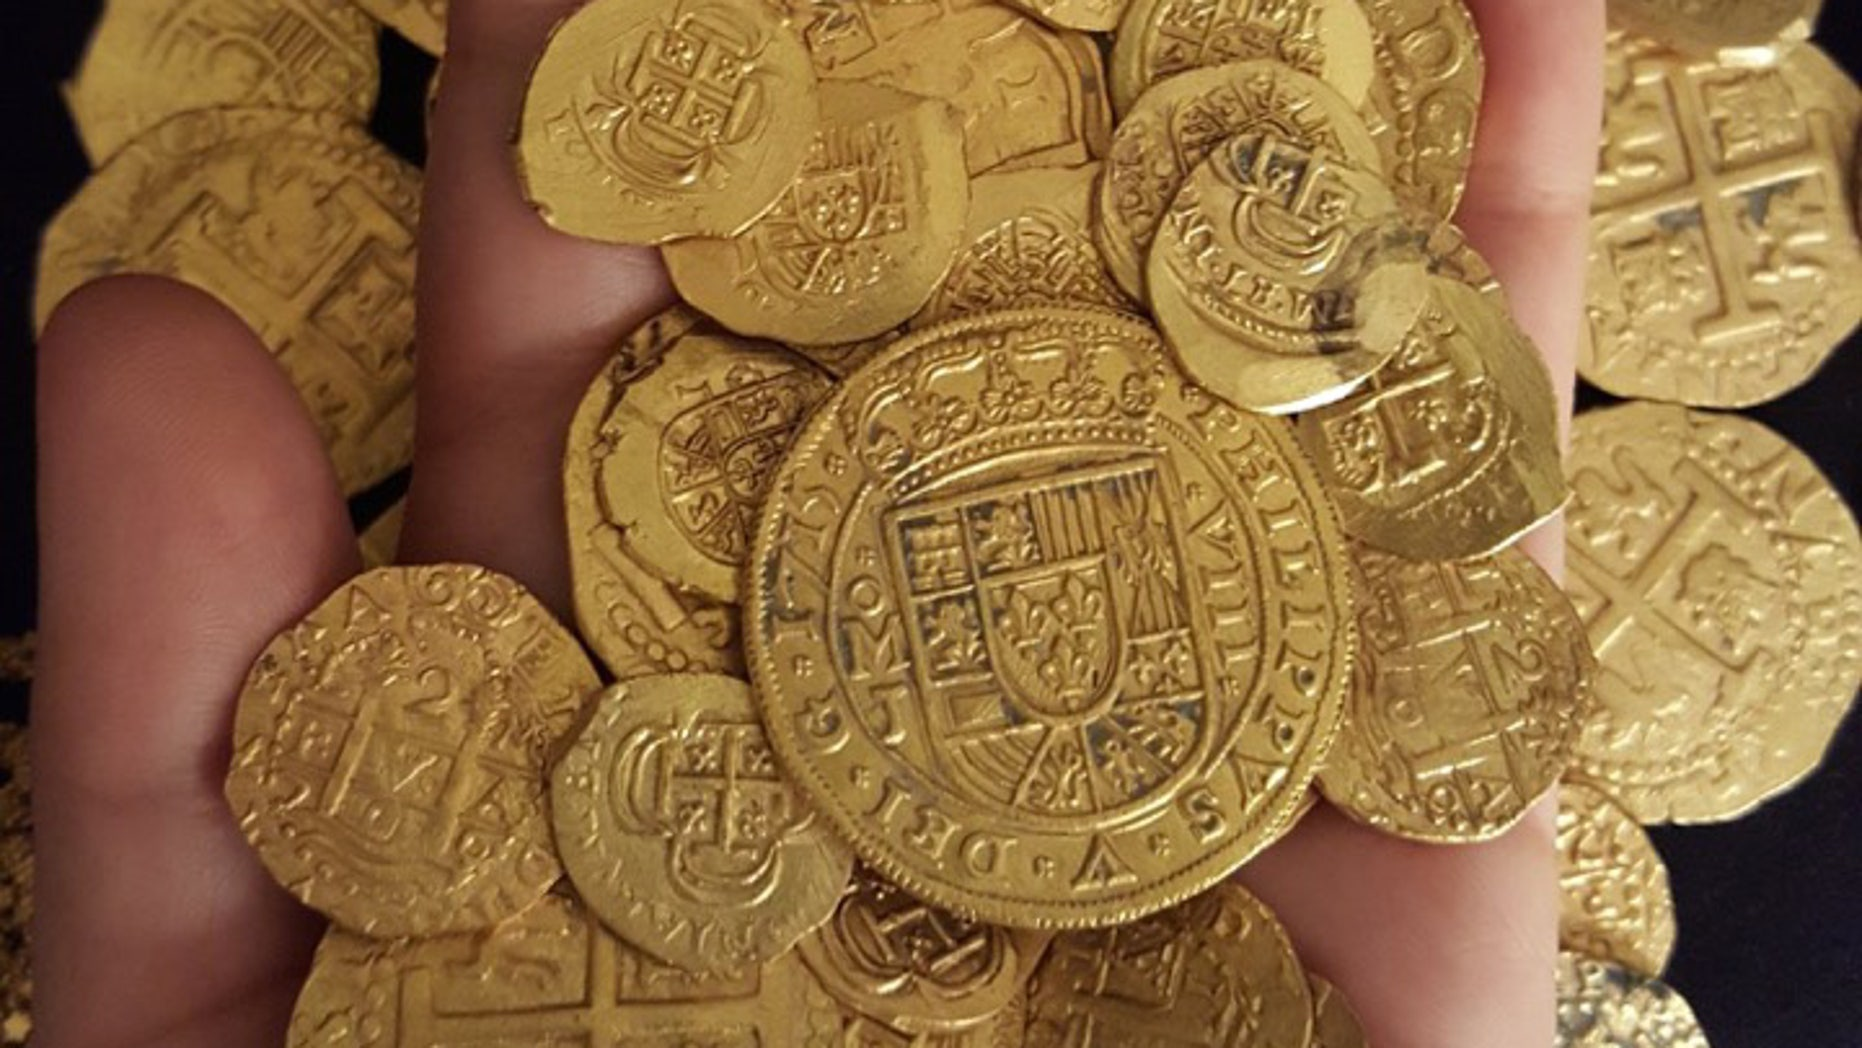 This undated photo made available by the 1715 Fleet-Queens Jewels, LLC., shows gold chains and coins that were recovered together with a royal coin off the coast of Florida. A family of treasure hunters has found more than $1 million worth of gold artifacts in the Atlantic Ocean off Fort Pierce, Fla., announced Monday, July 27, 2015. (1715 Fleet-Queen Jewels, LLC via AP)